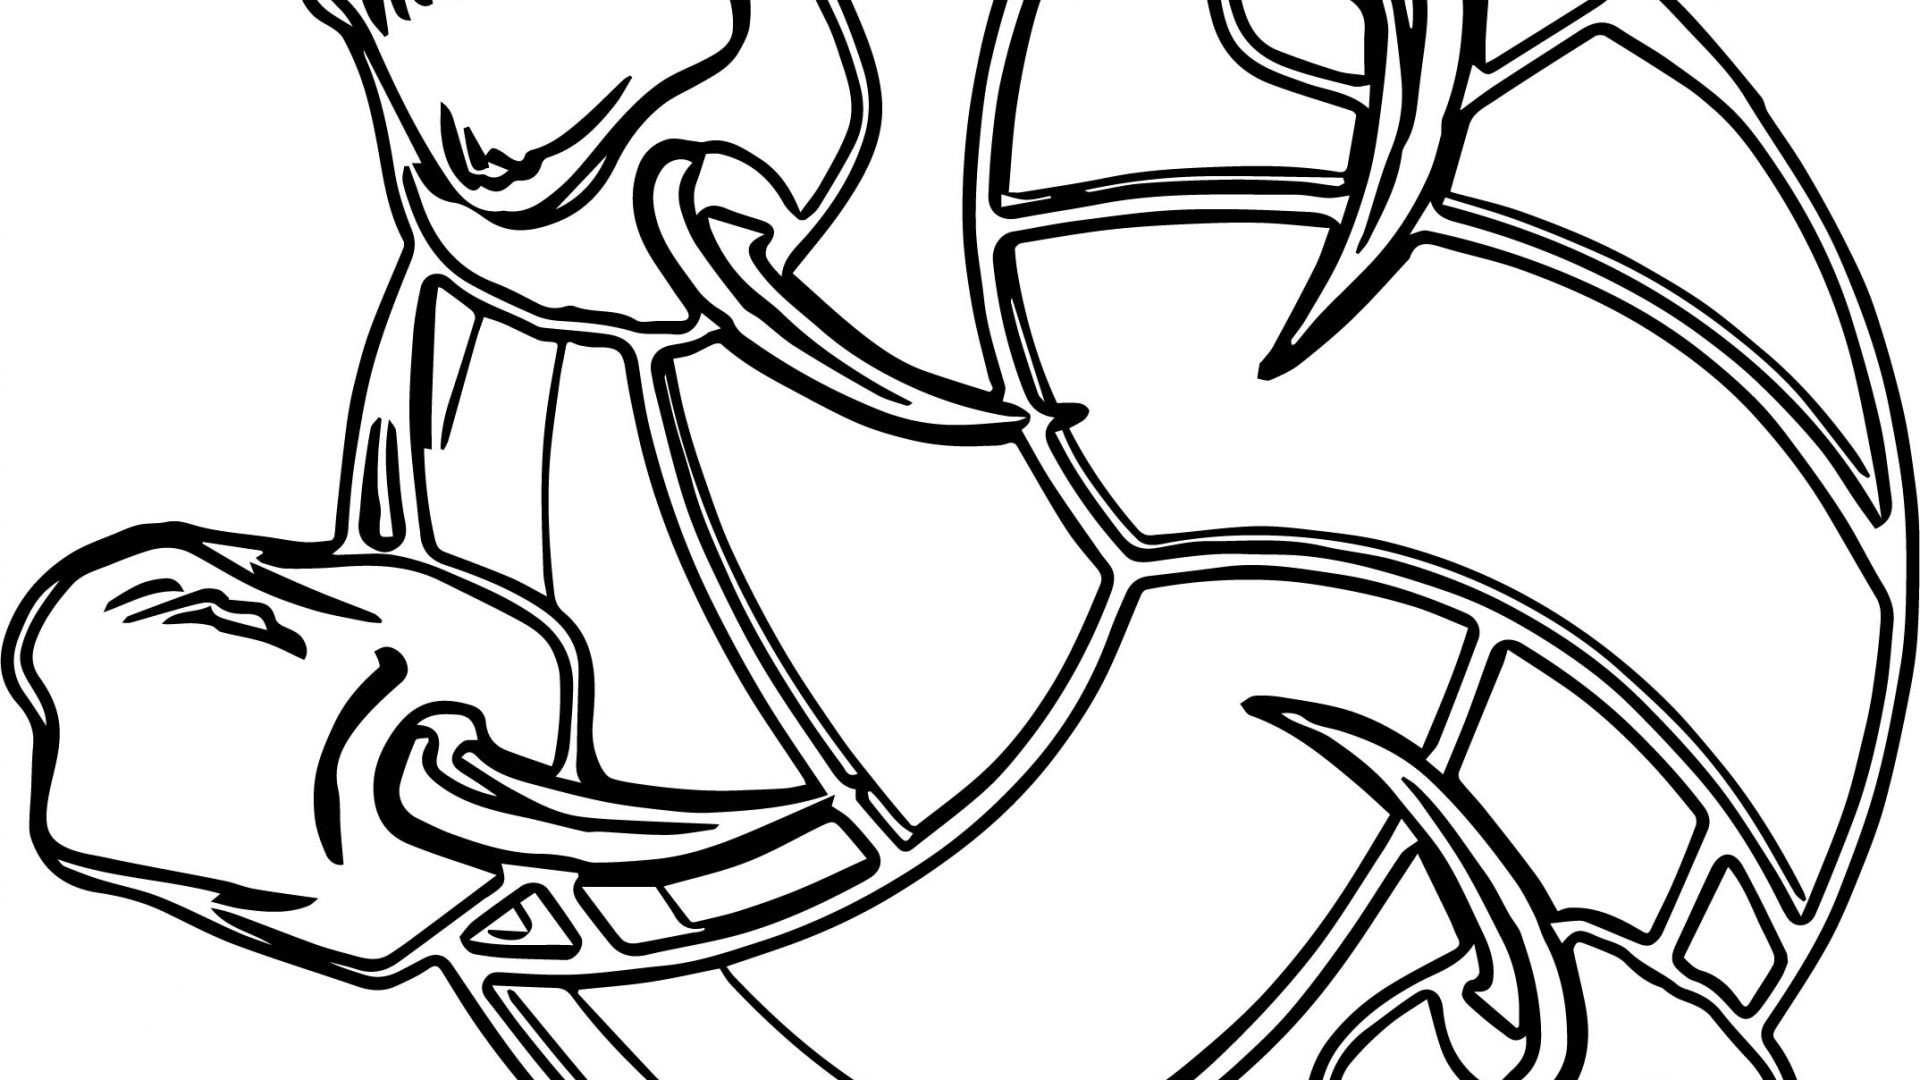 Girl Sports Coloring Pages At Getcolorings